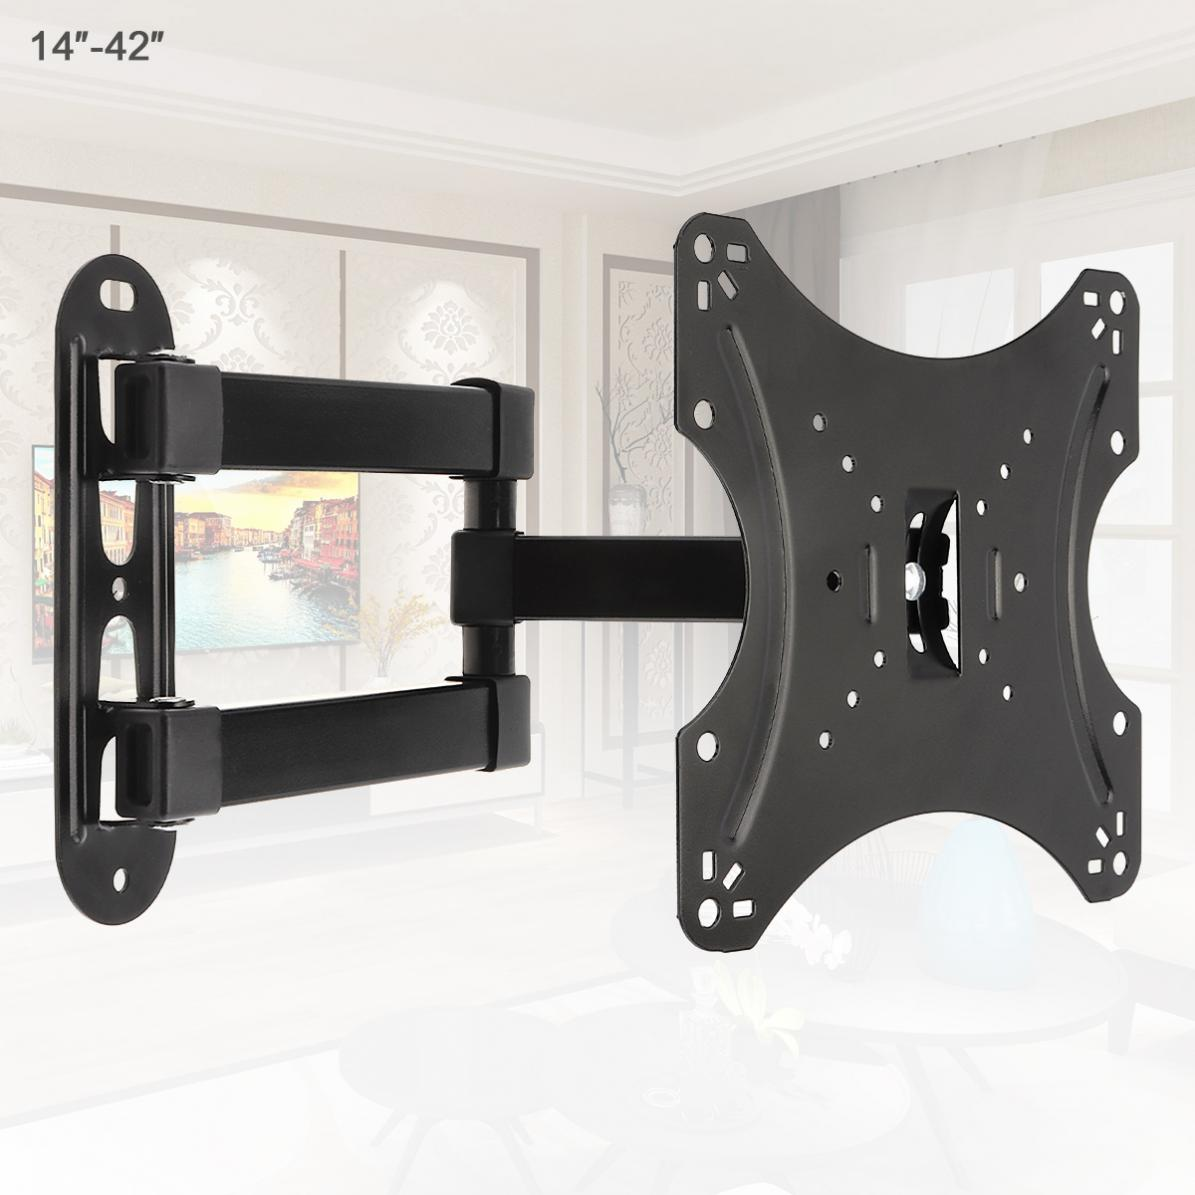 Universal 18KG Adjustable TV Wall Mount Bracket Flat Panel TV Frame Support 15 Degrees Tilt with Gradienter for 14 - 42 Inch LCD